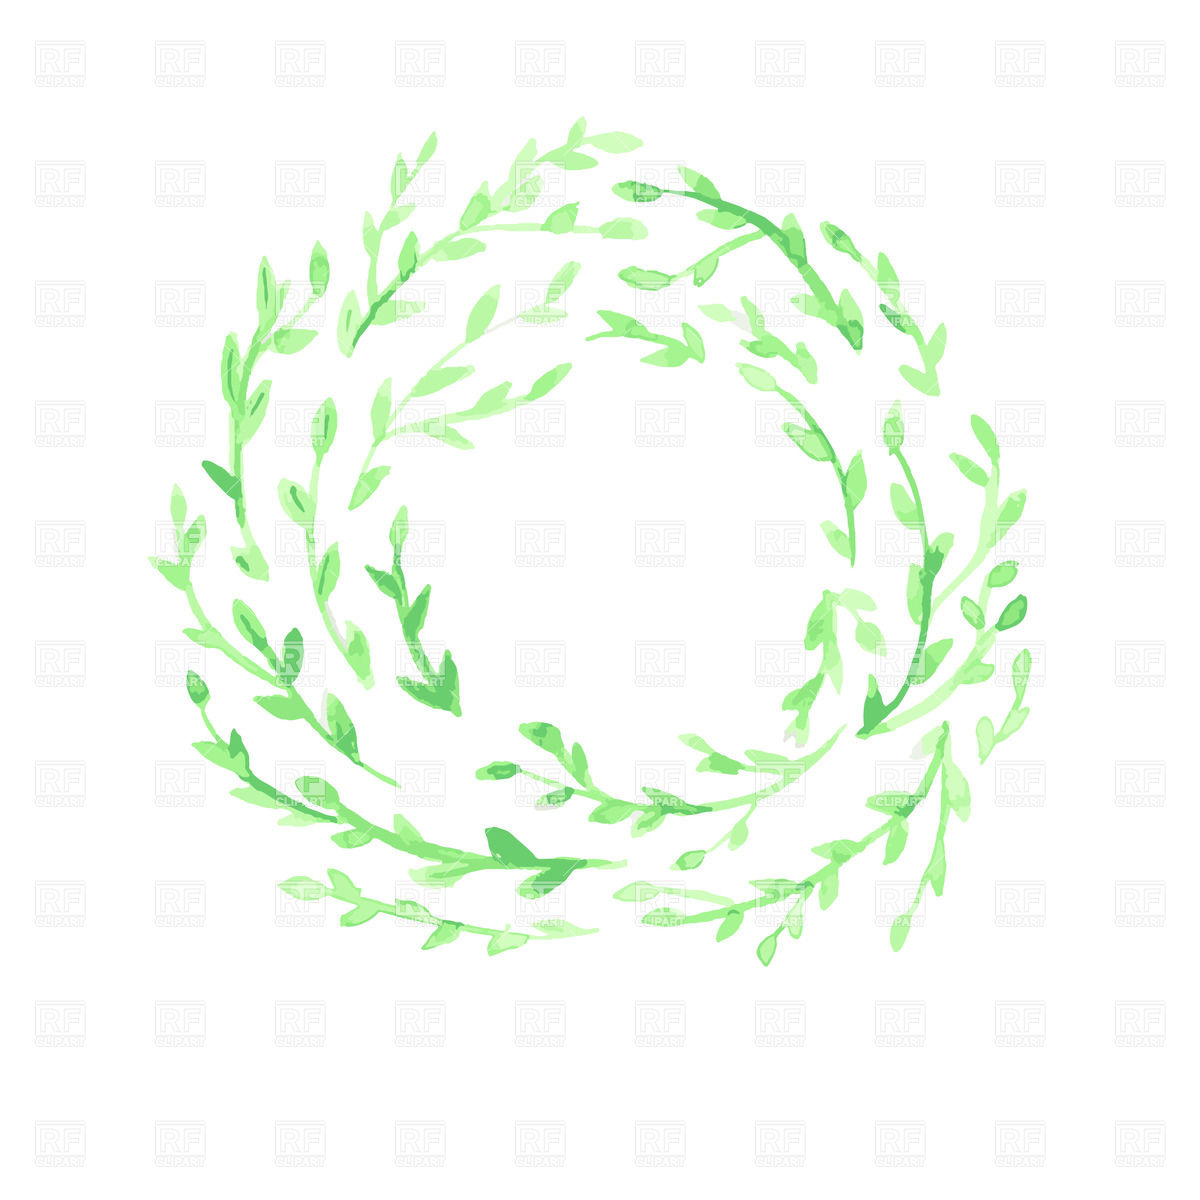 Green watercolor leaf wreath on white background Vector Image of 1200x1200